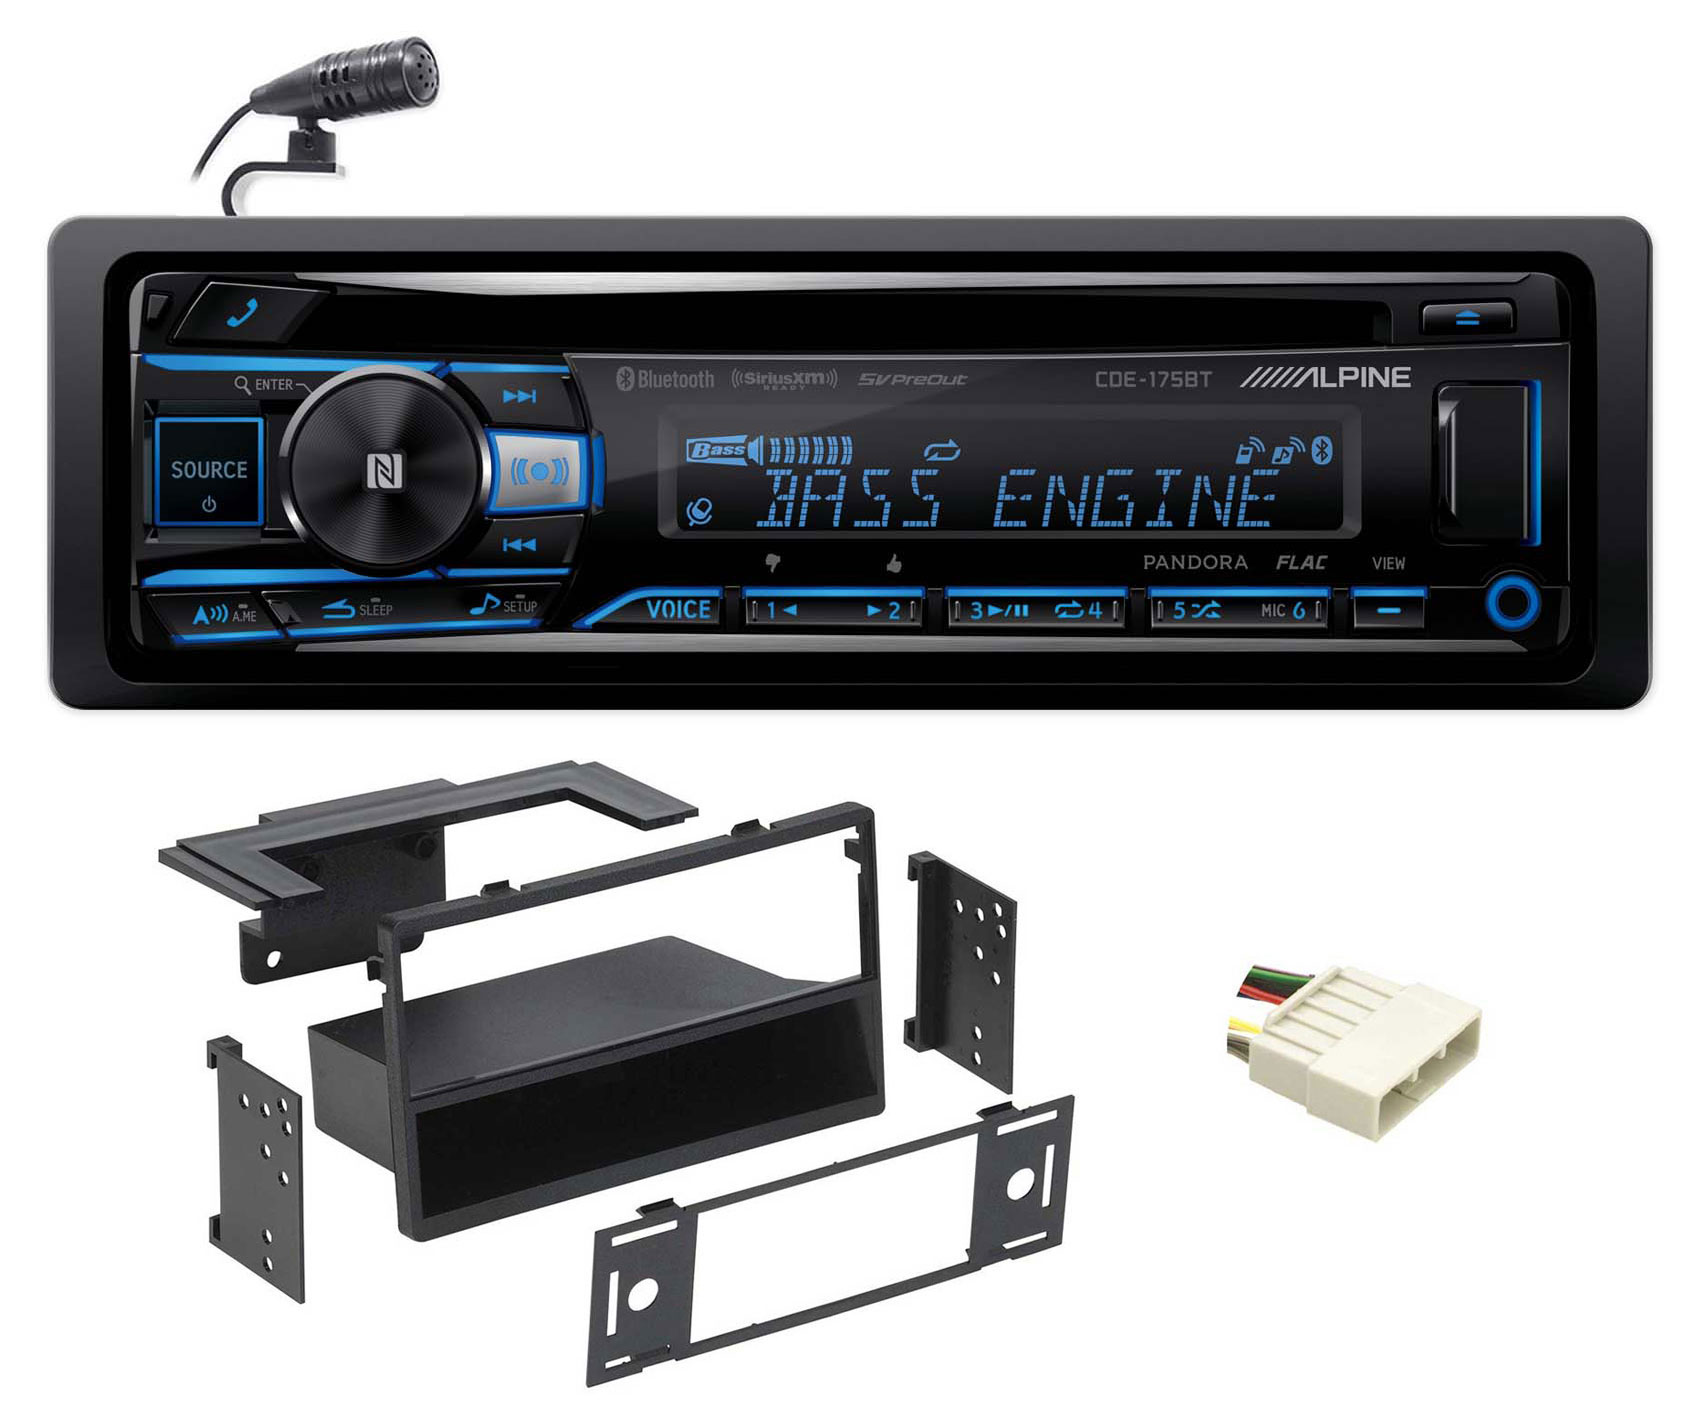 ALPINE Bluetooth CD Player USB/AUX SiriusXM For 1996-1998